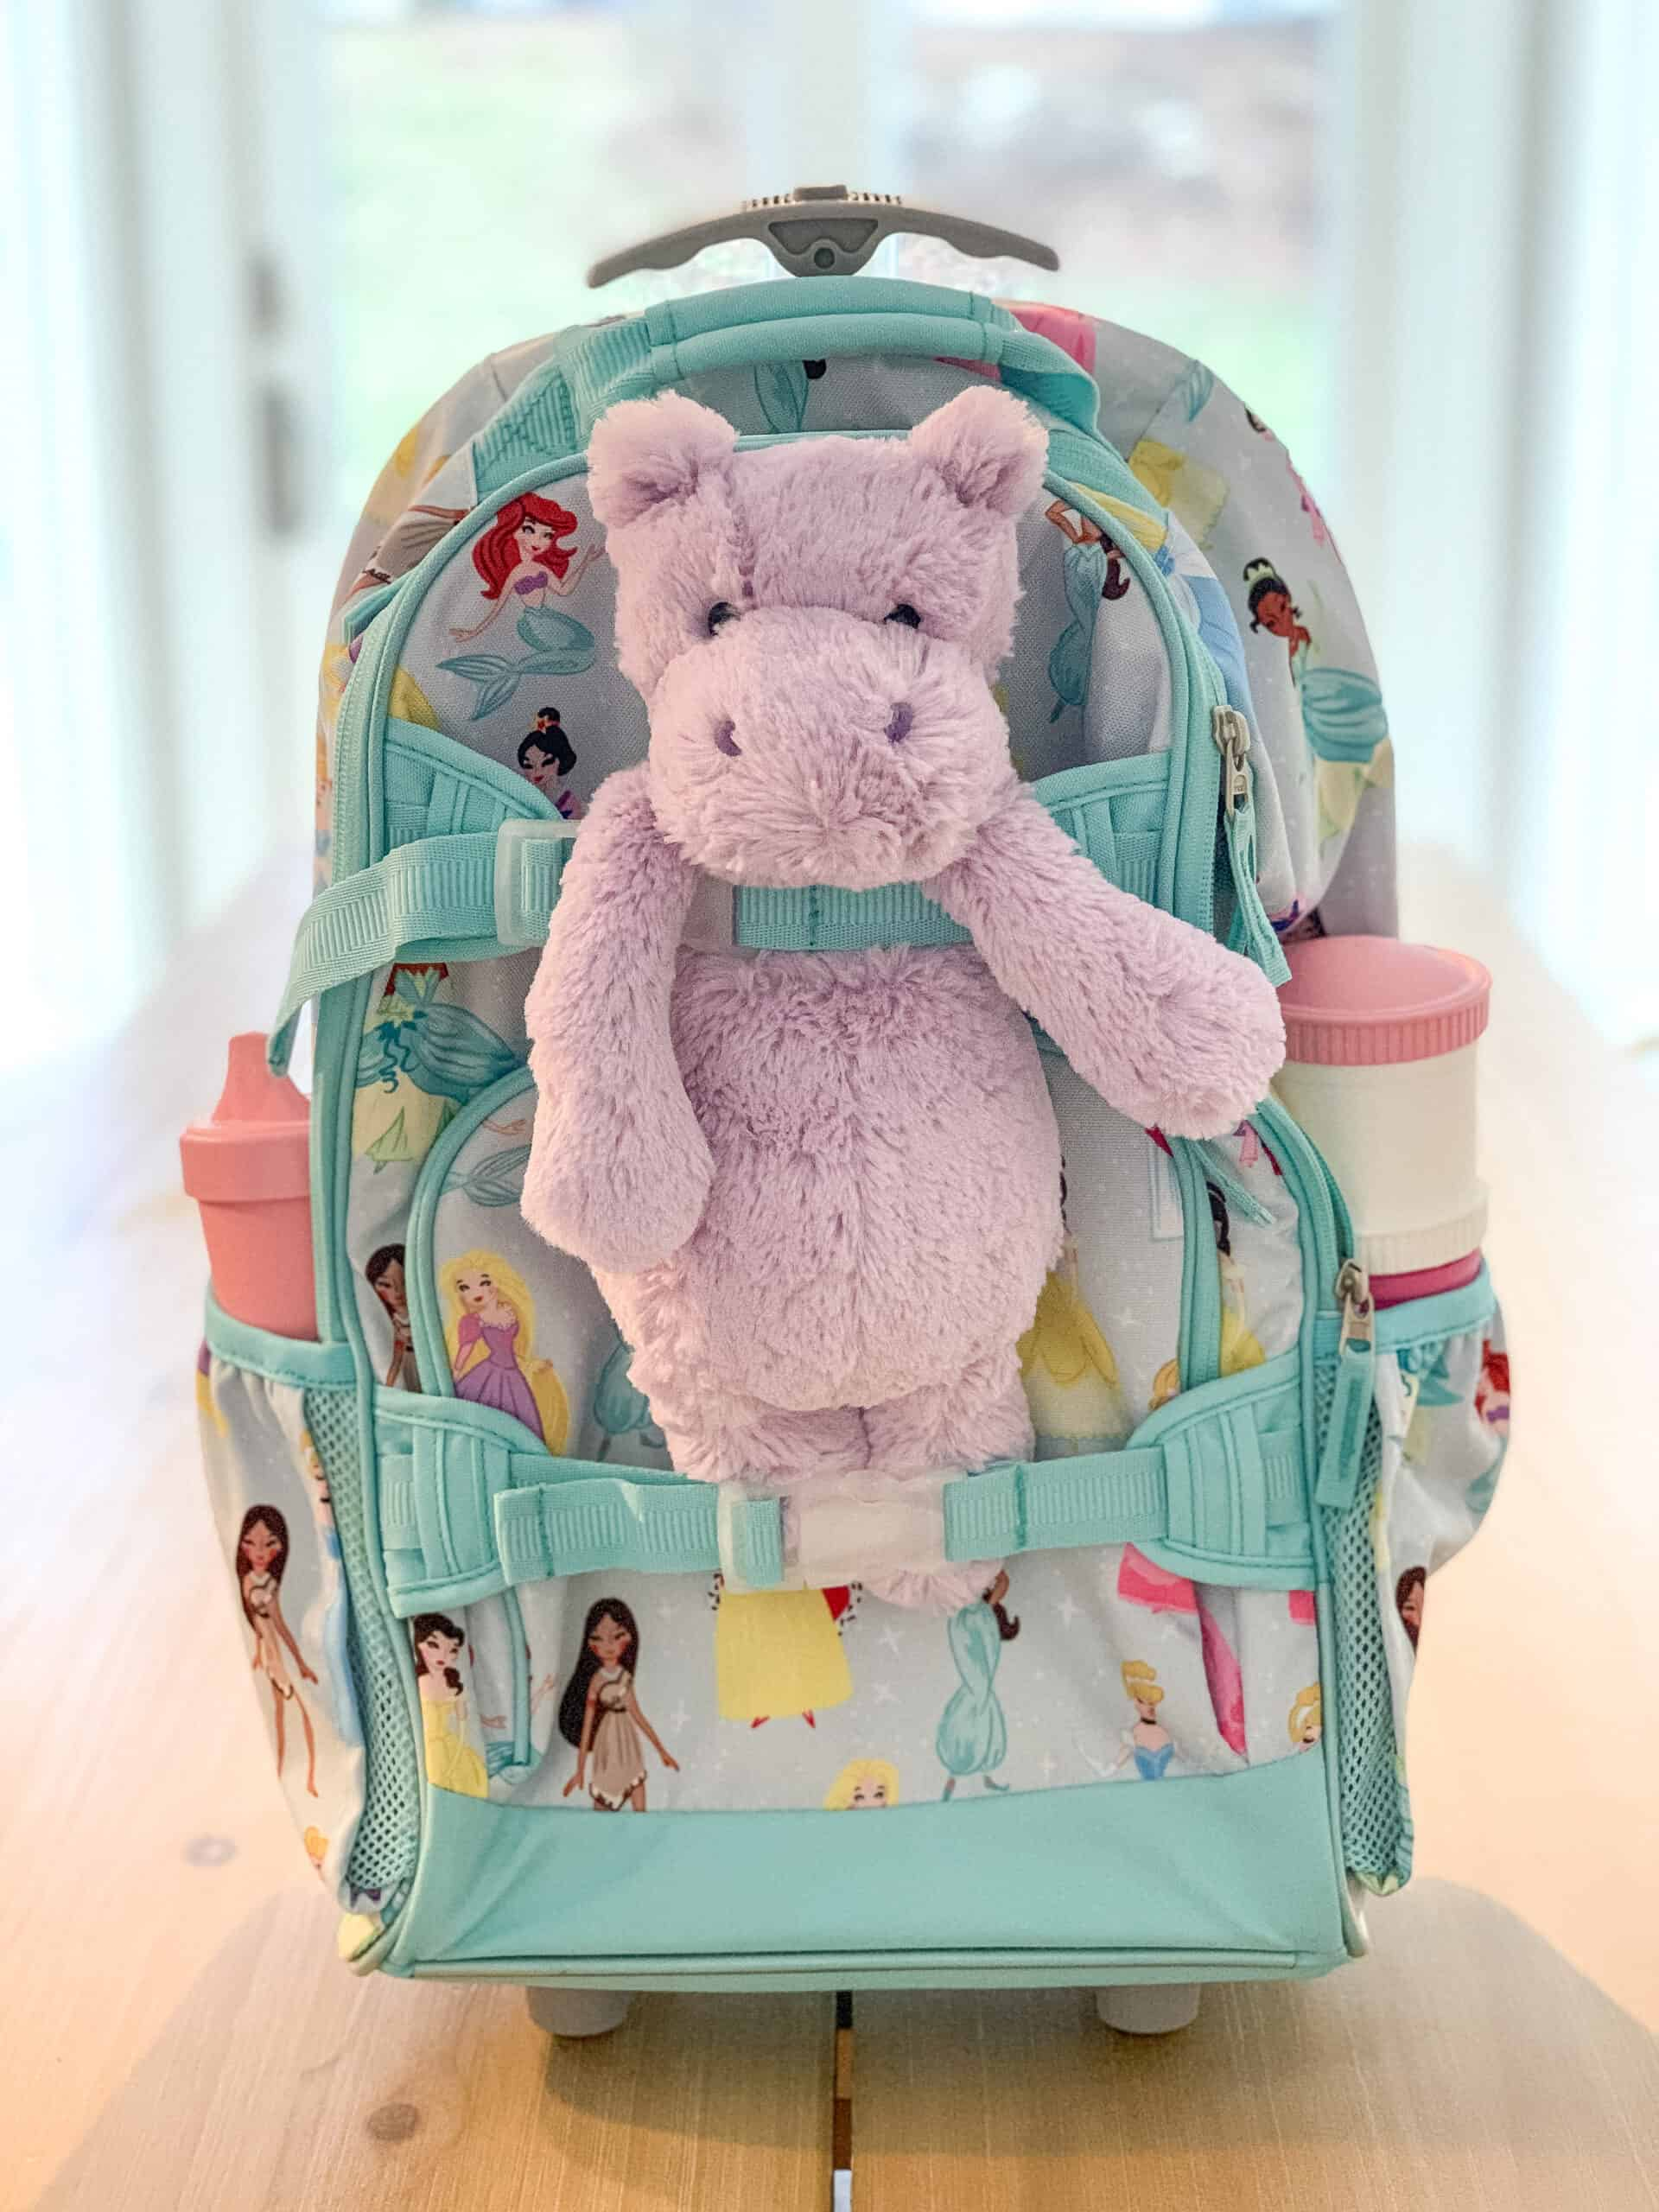 Pottery Barn rolling backpack with stuffed animal